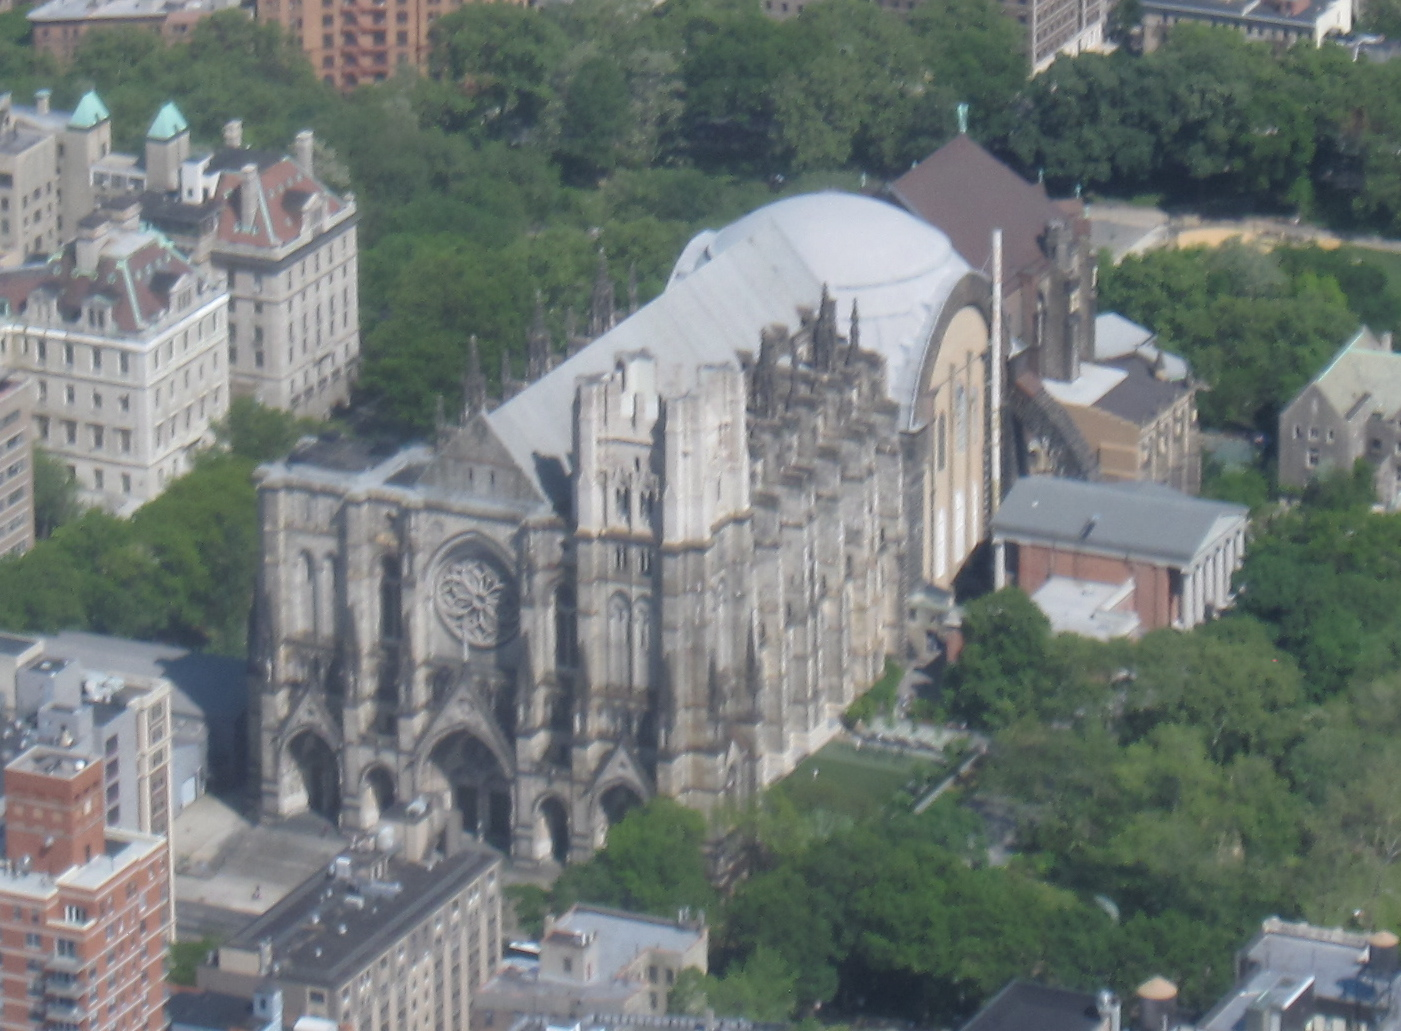 Cathedral of St. John the Divine - New York City, New York, USA - m5x